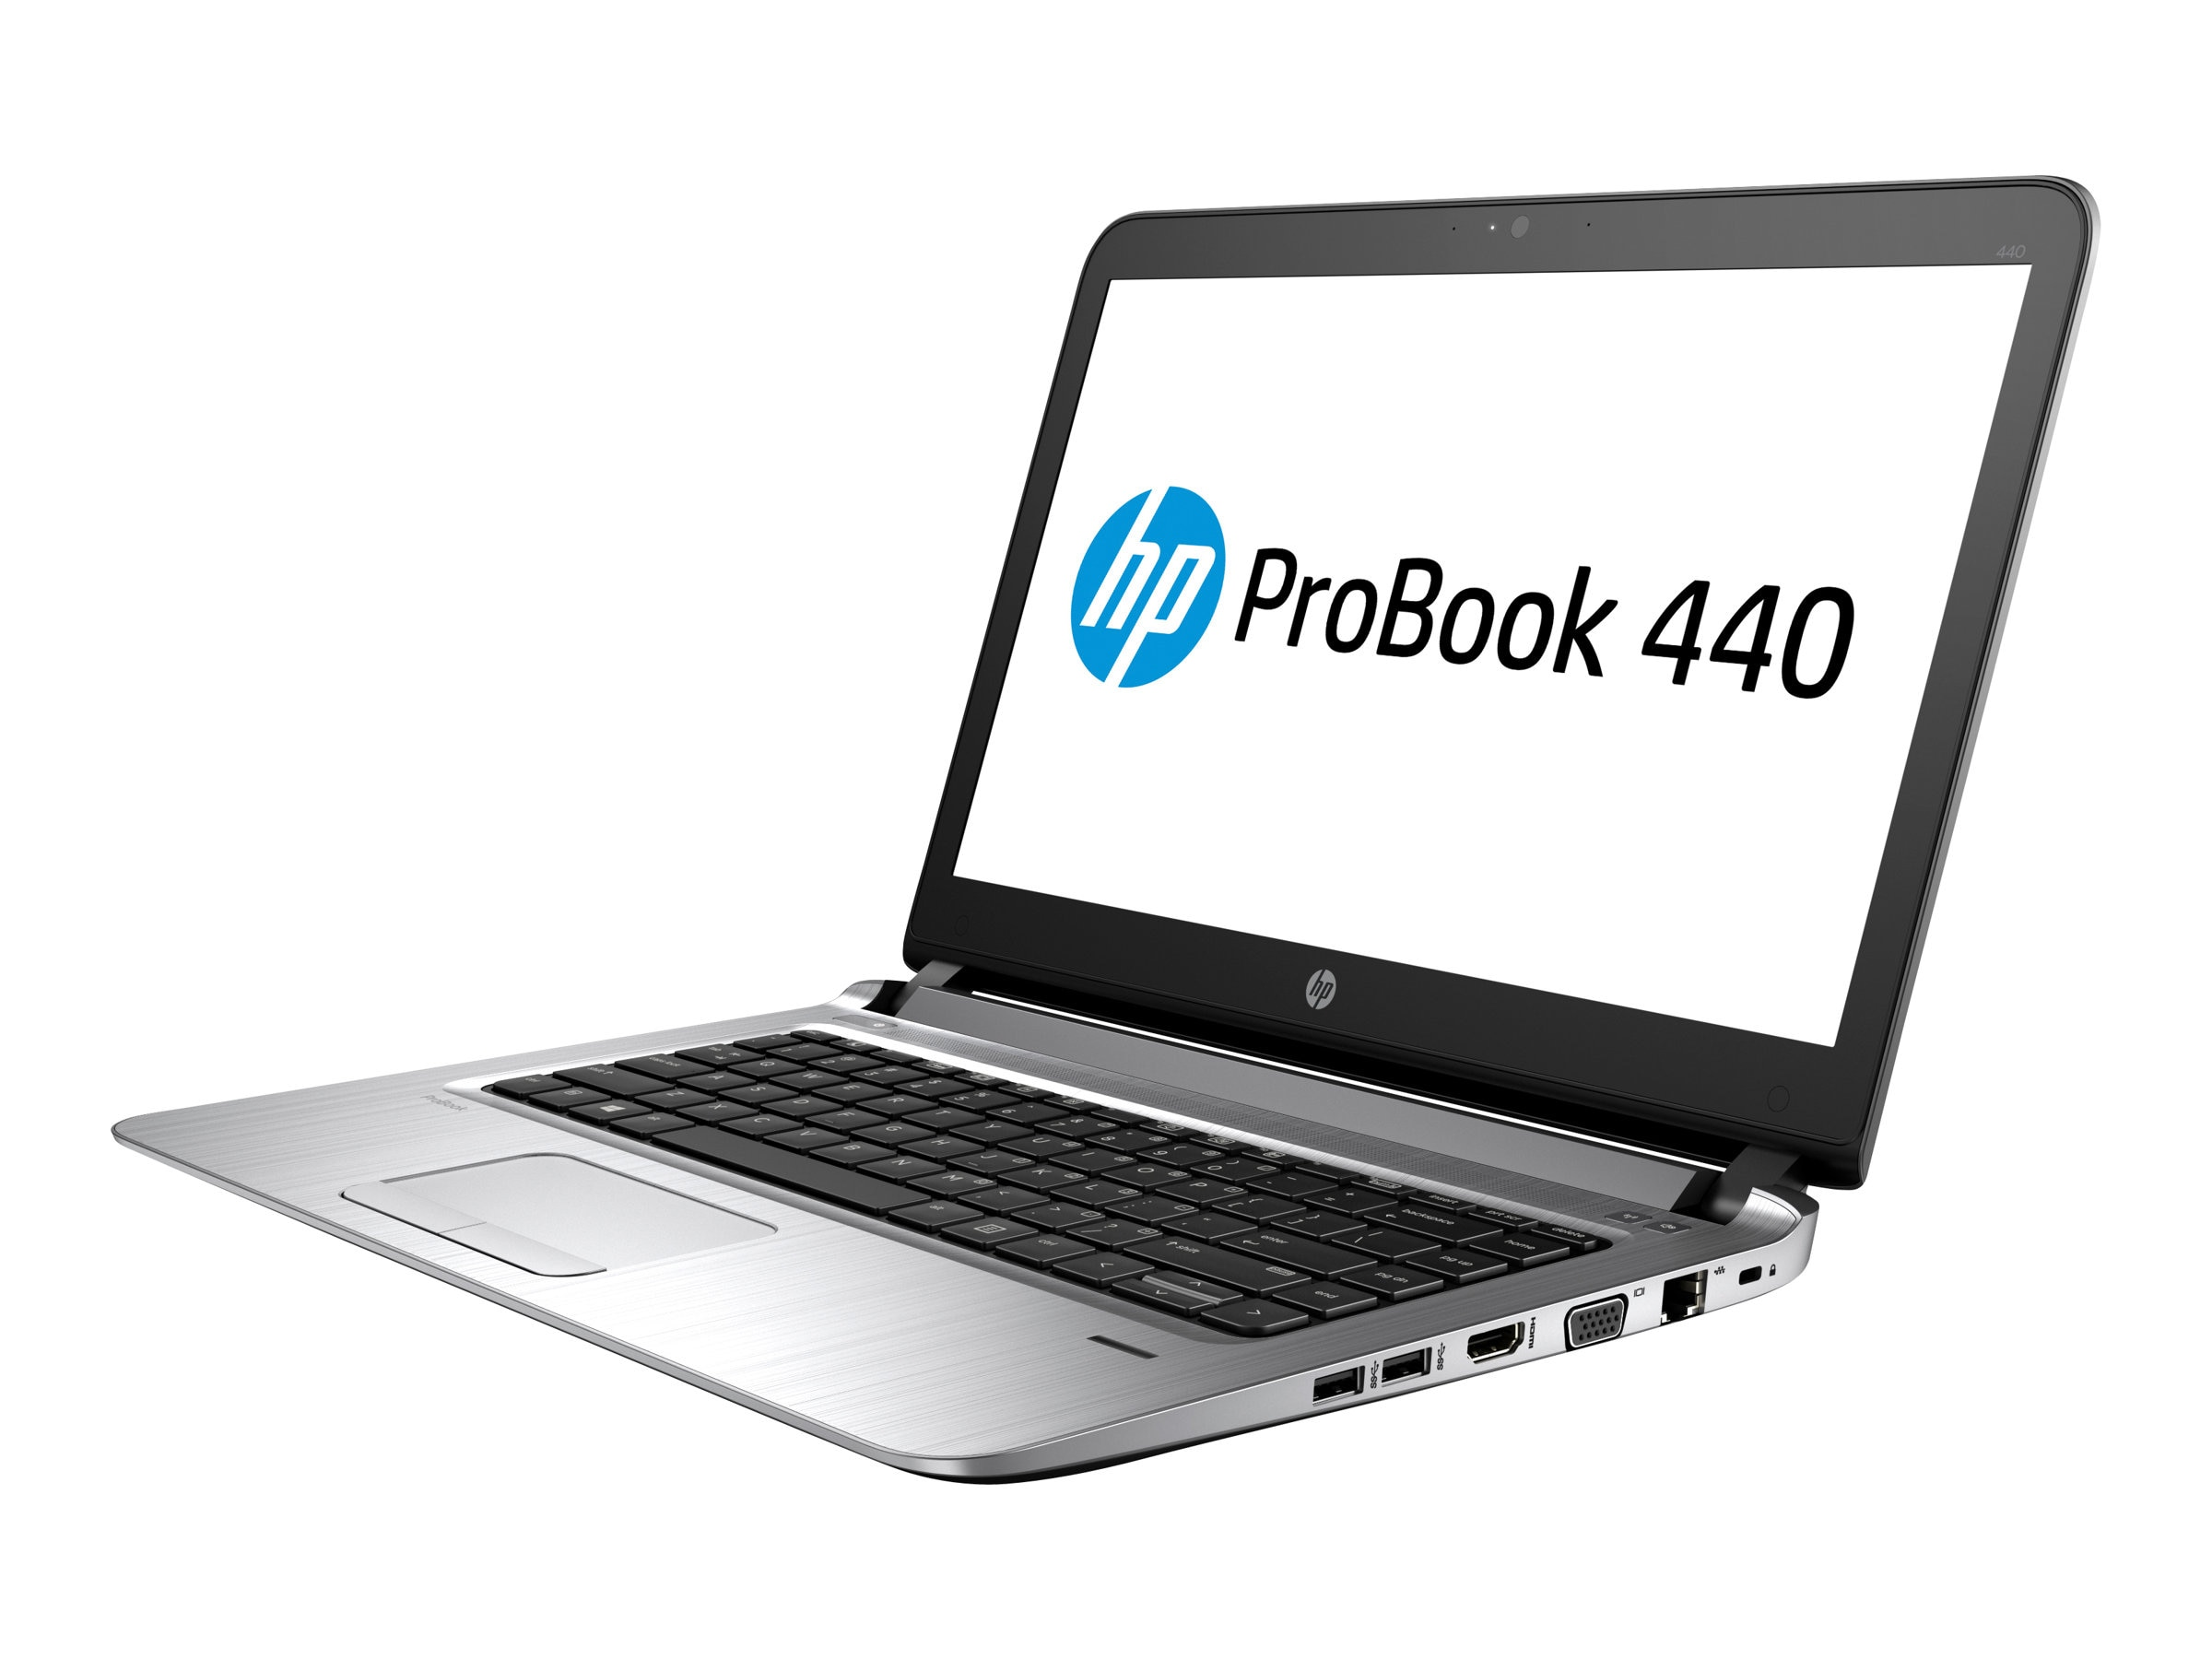 HP ProBook 440 G3 2.3GHz Core i5 14in display, T1B56UT#ABA, 30731411, Notebooks